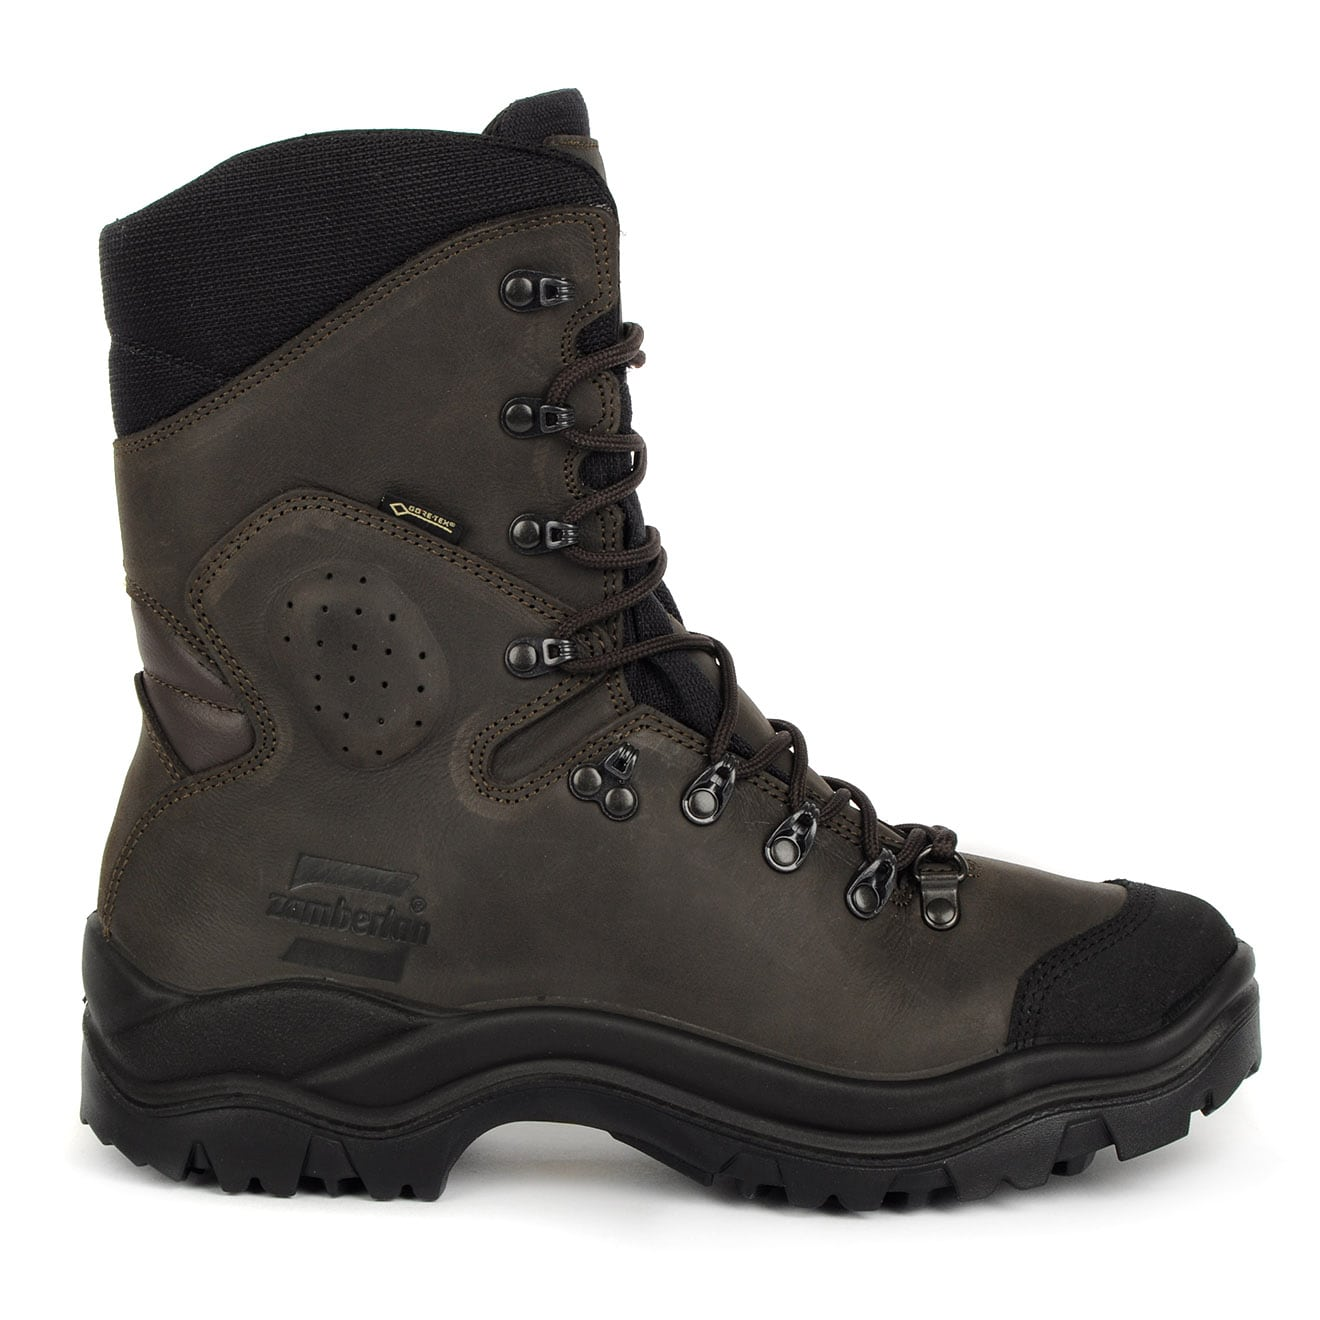 Zamberlan New Highland Goretex Boots Waxed Brown